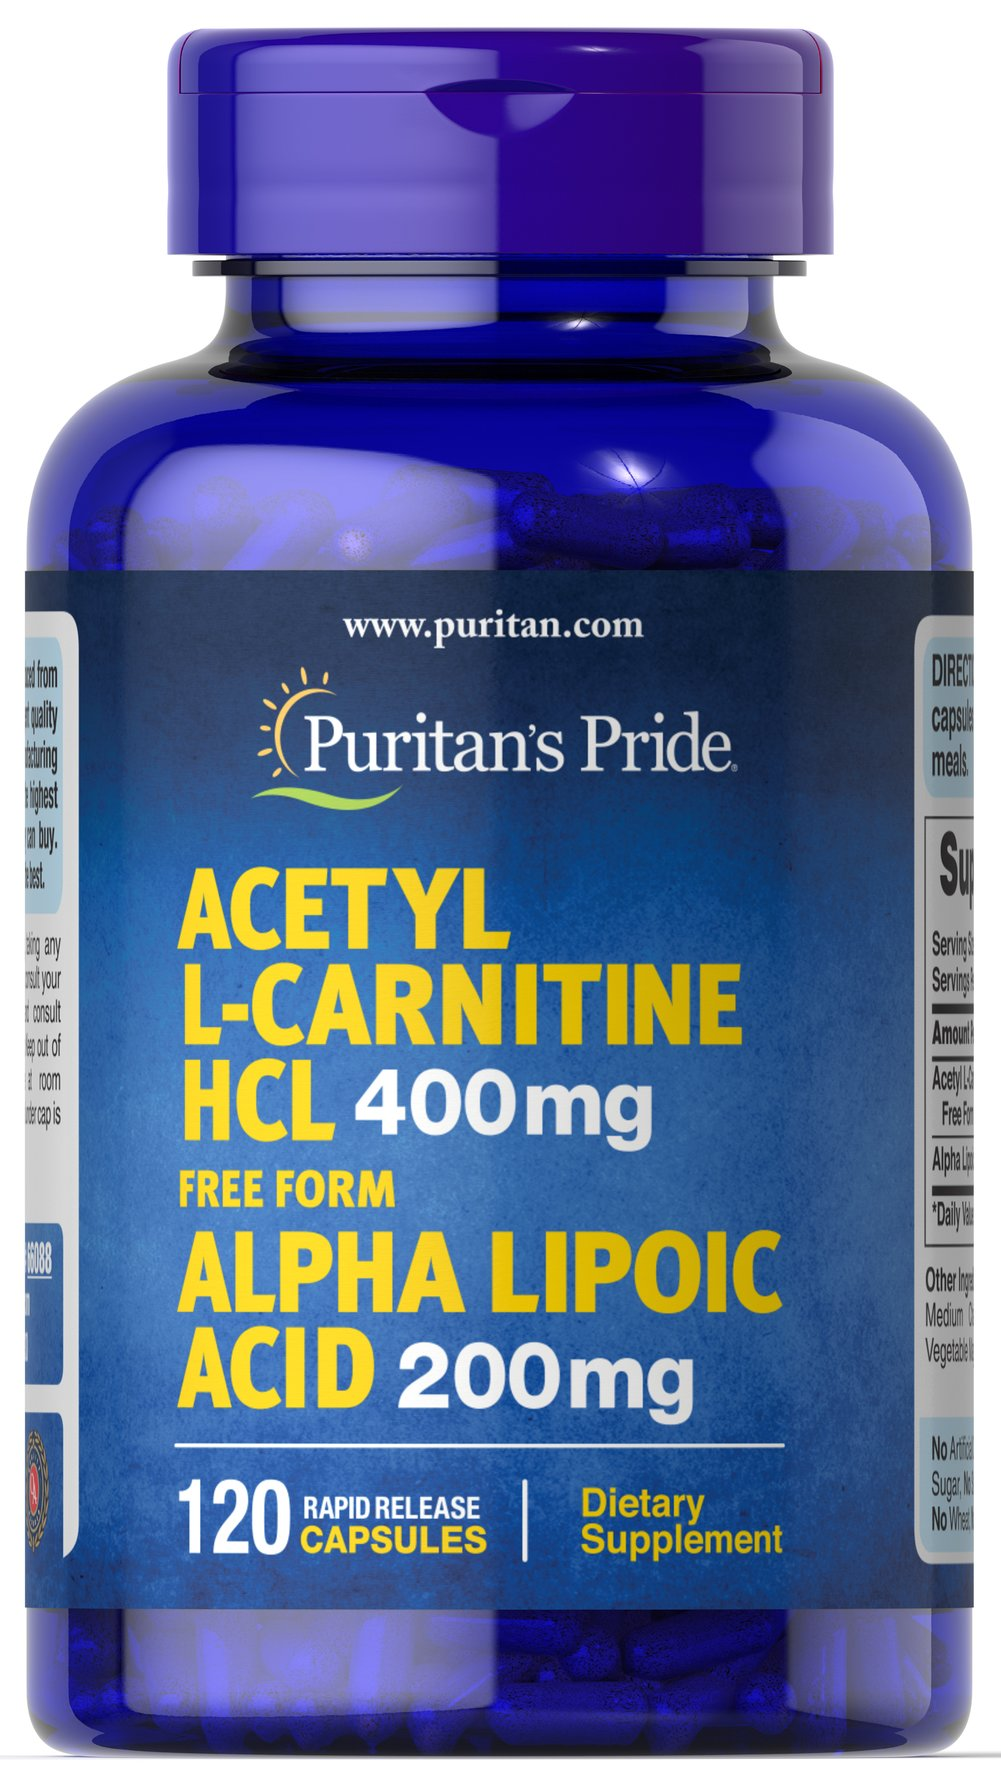 Acetyl L-Carnitine 400 mg with Alpha Lipoic Acid 200 mg <p>Supports Antioxidant Health**</p><p>Supports Metabolic Functioning**</p><p>Use as part of your healthy aging program**</p><p>As we age, our cells are less able to counteract the cell-damaging effects of free radicals and oxidative stress. Oxidative stress can lead to the premature aging of cells.</p> 120 Capsules 400 mg/200 mg $69.99